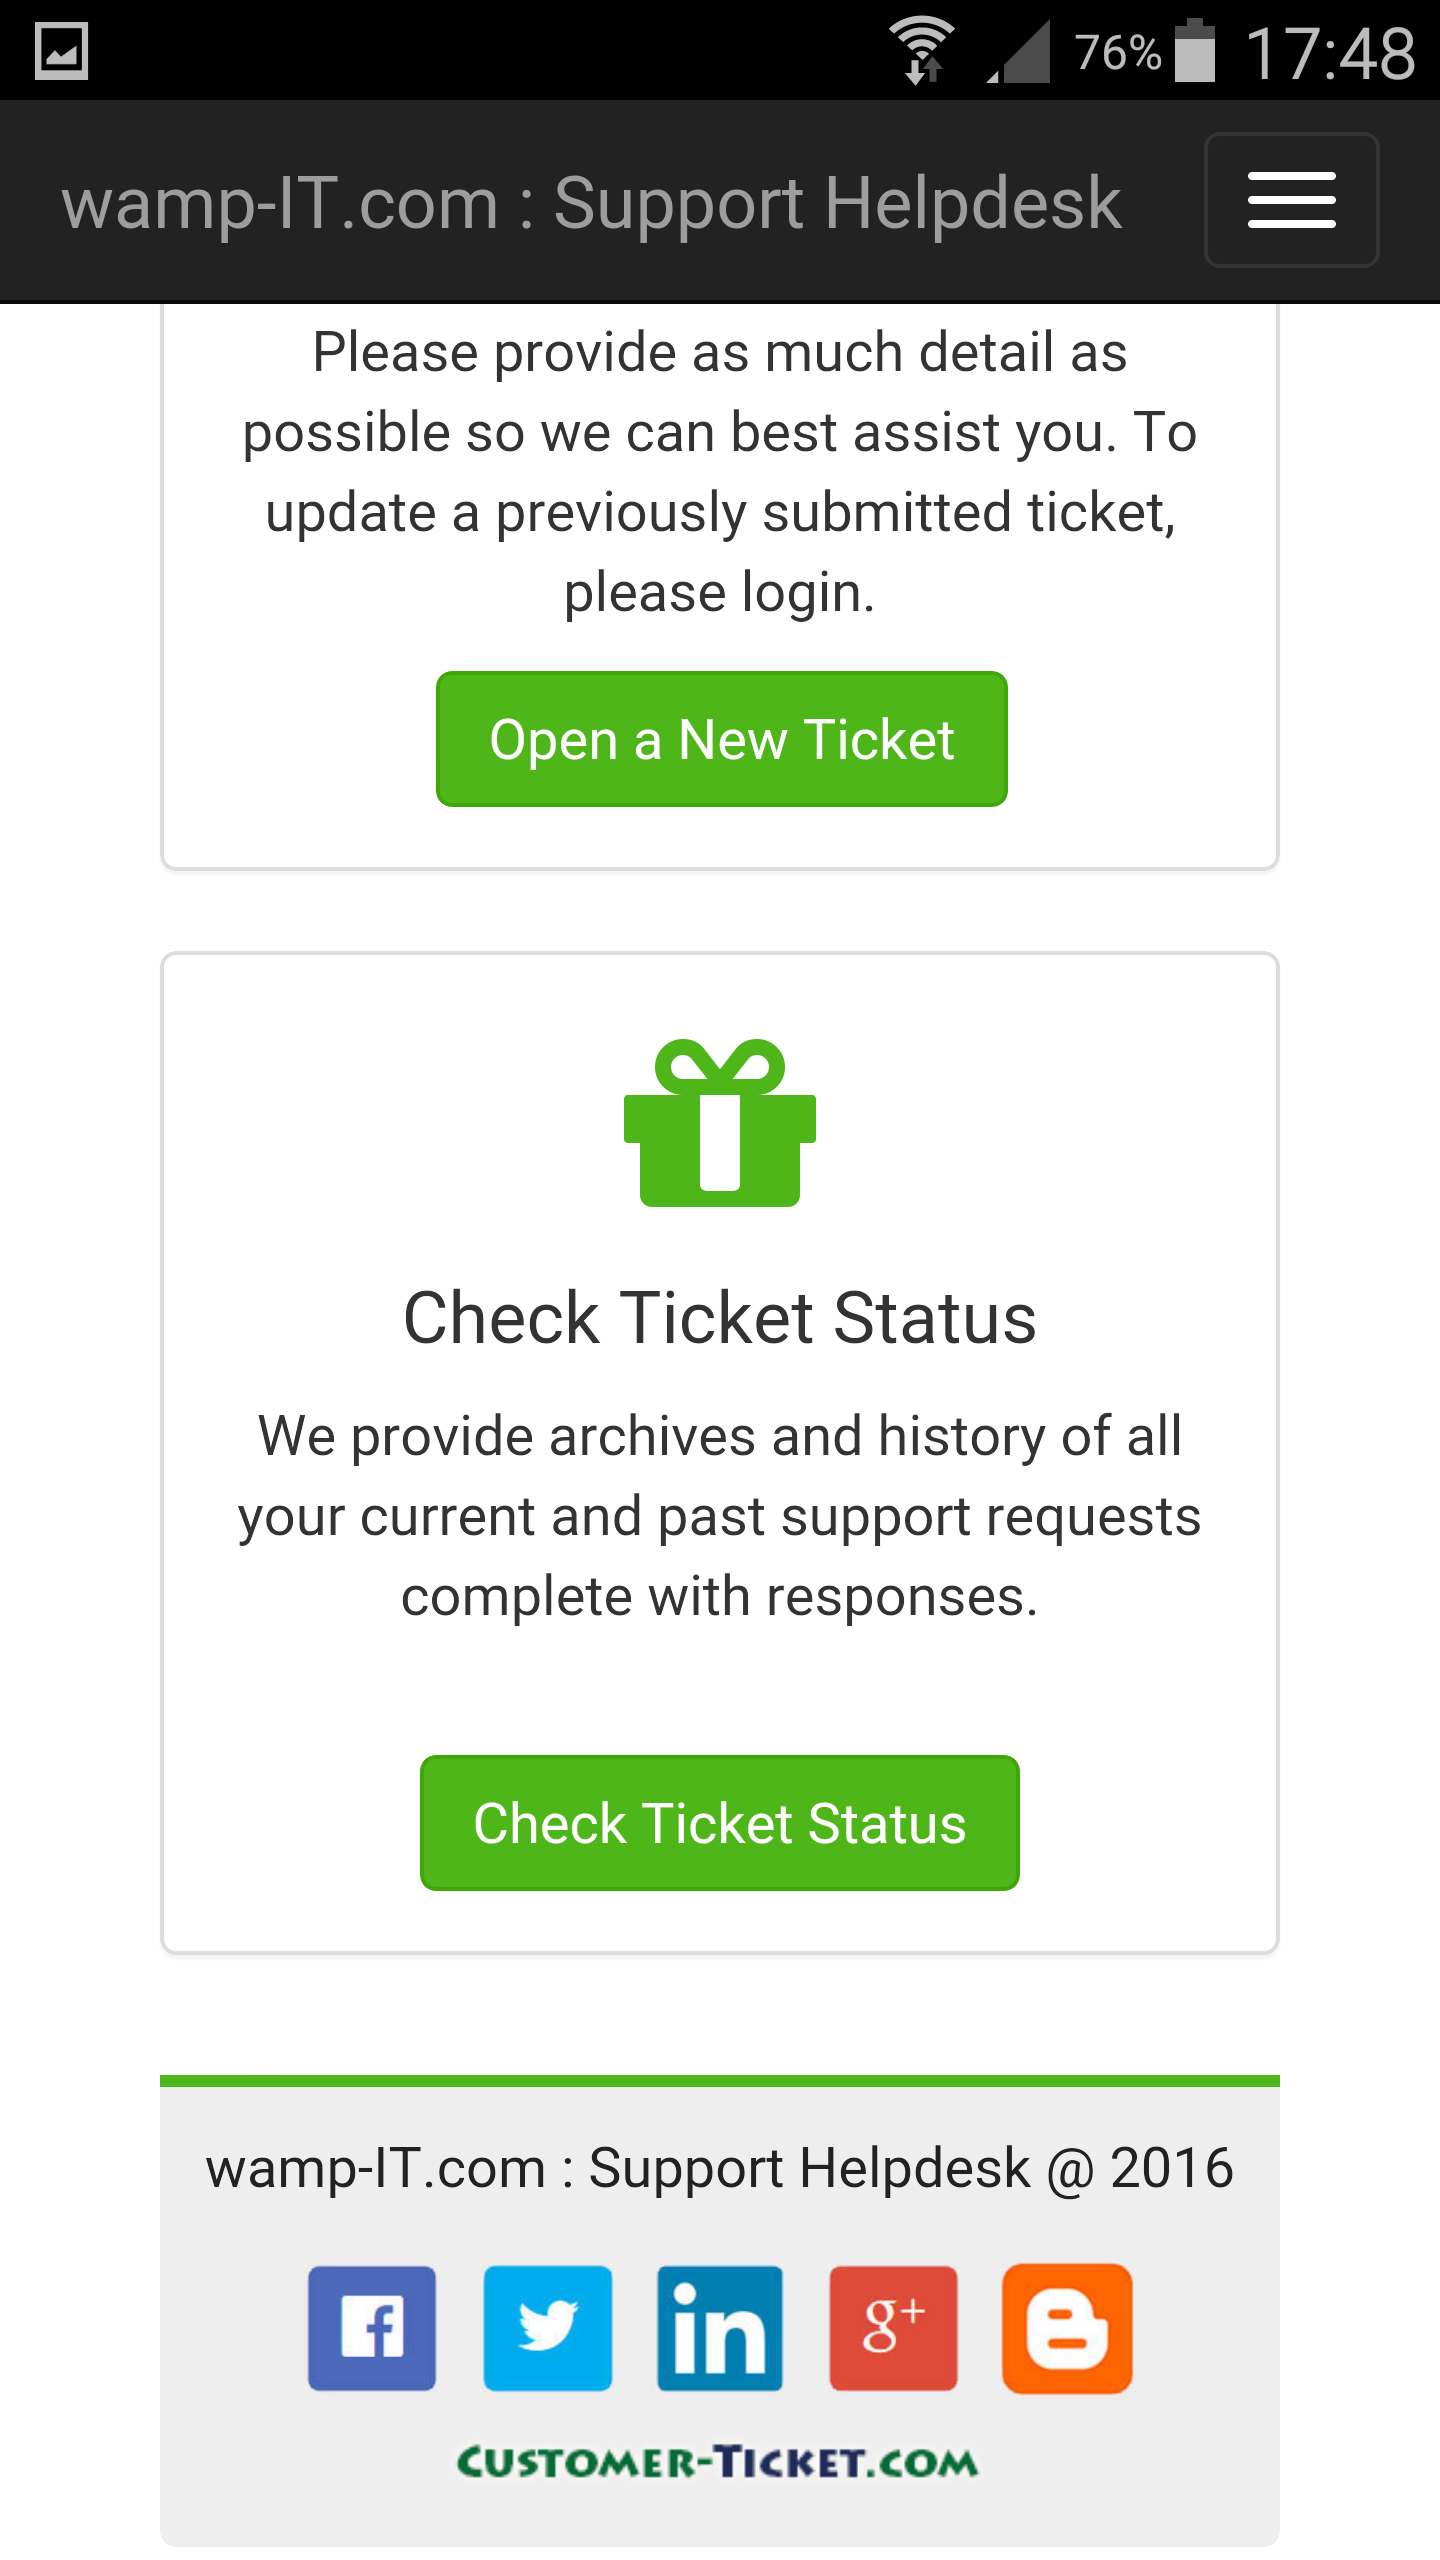 ticket helpdesk responsive web, design theme 1 in mobile view